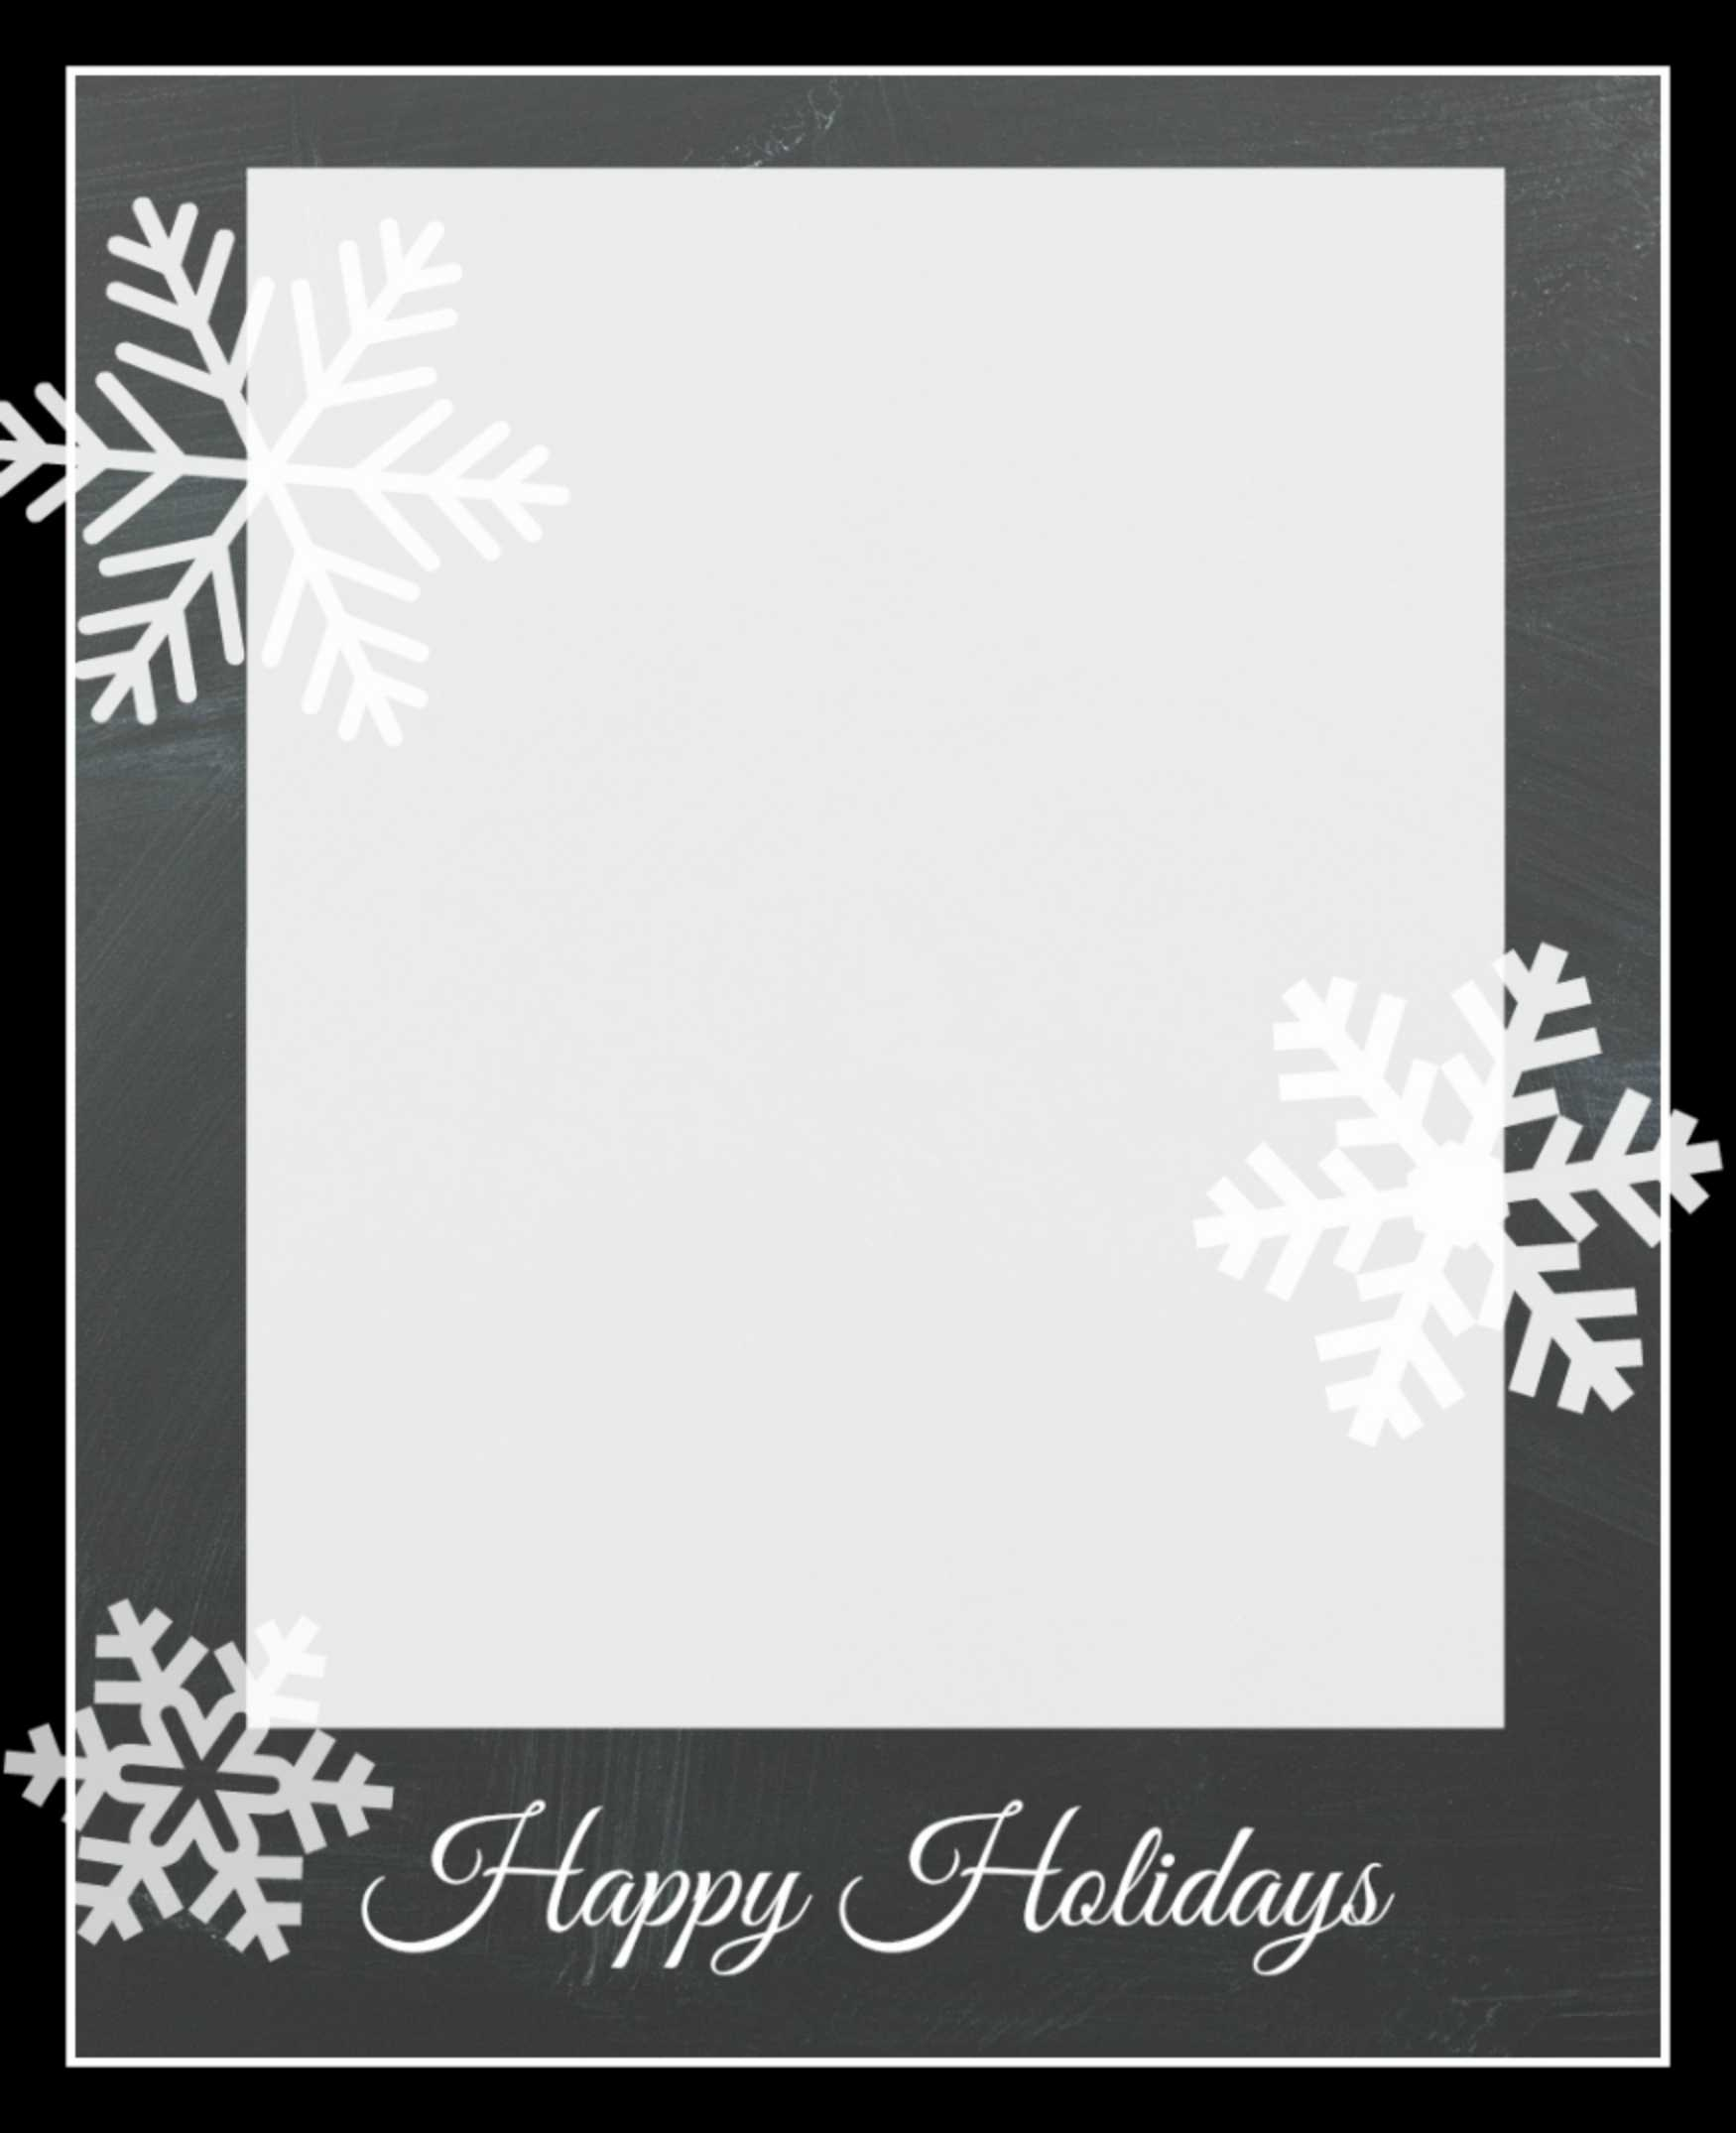 003 Snowflakecard3 Free Holiday Card Templates Template Inside Free Holiday Photo Card Templates